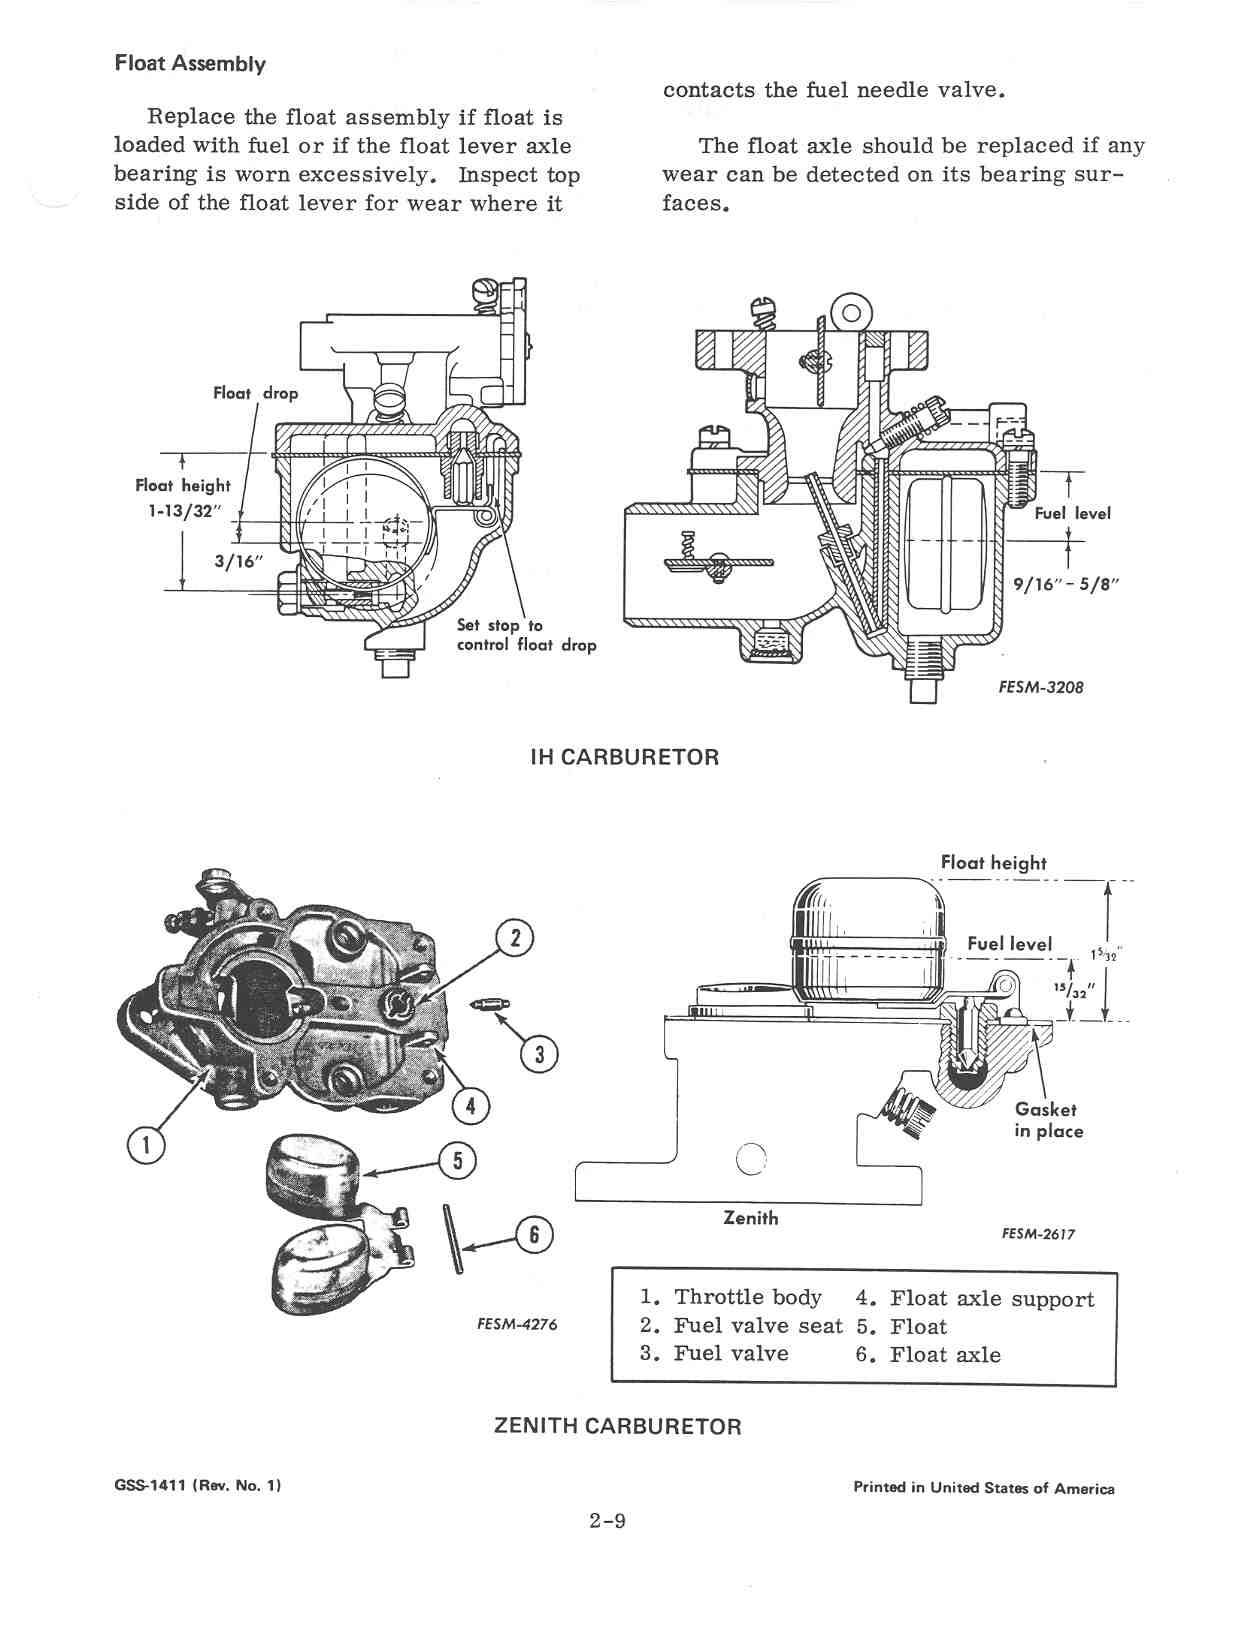 hight resolution of farmall h carb diagram wiring diagram expert farmall h carburetor fuel diagram